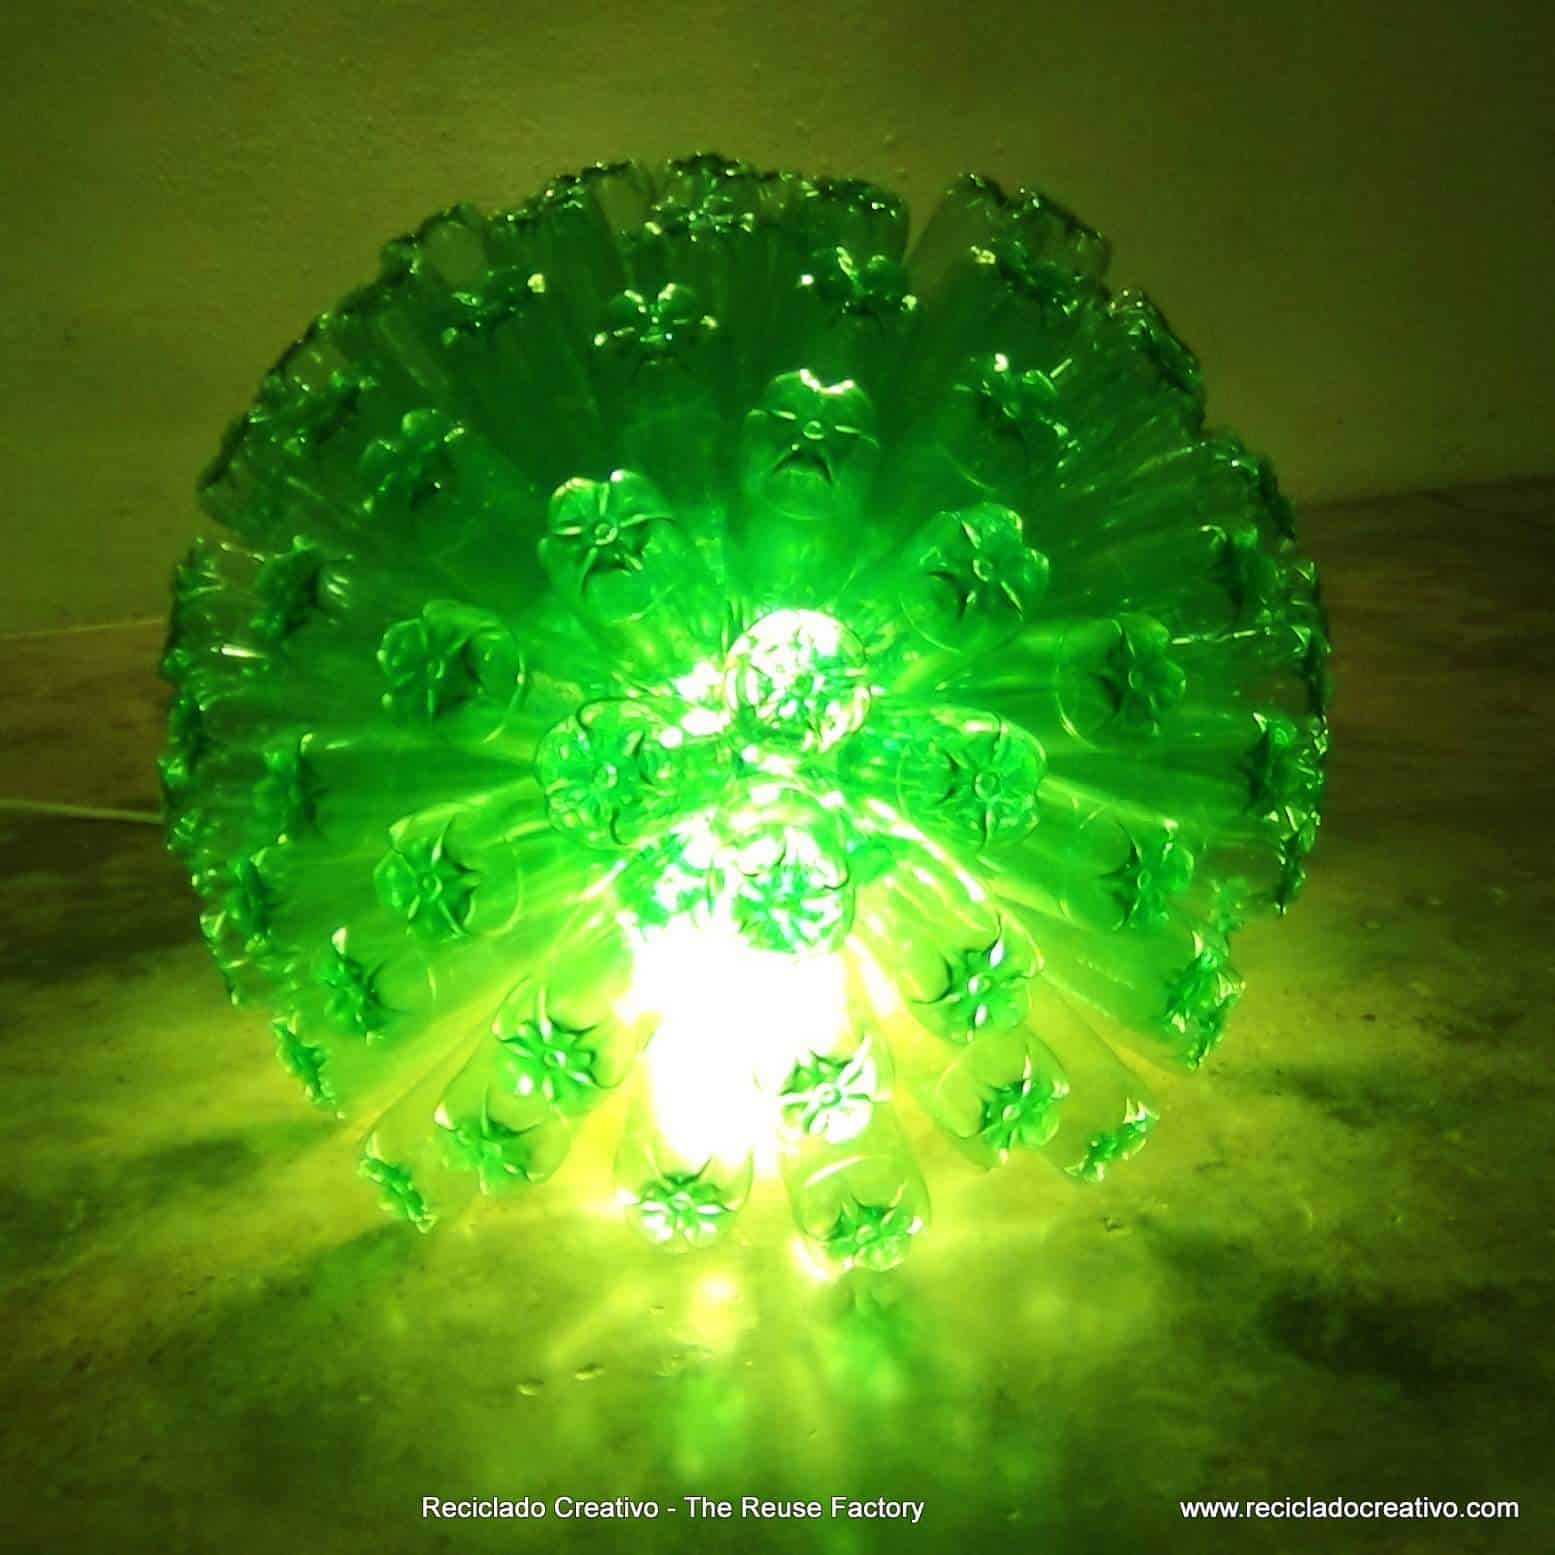 Recycled Plastic Bottle Lamp 125 Recycled Plastic Bottles Lamp Recyclart